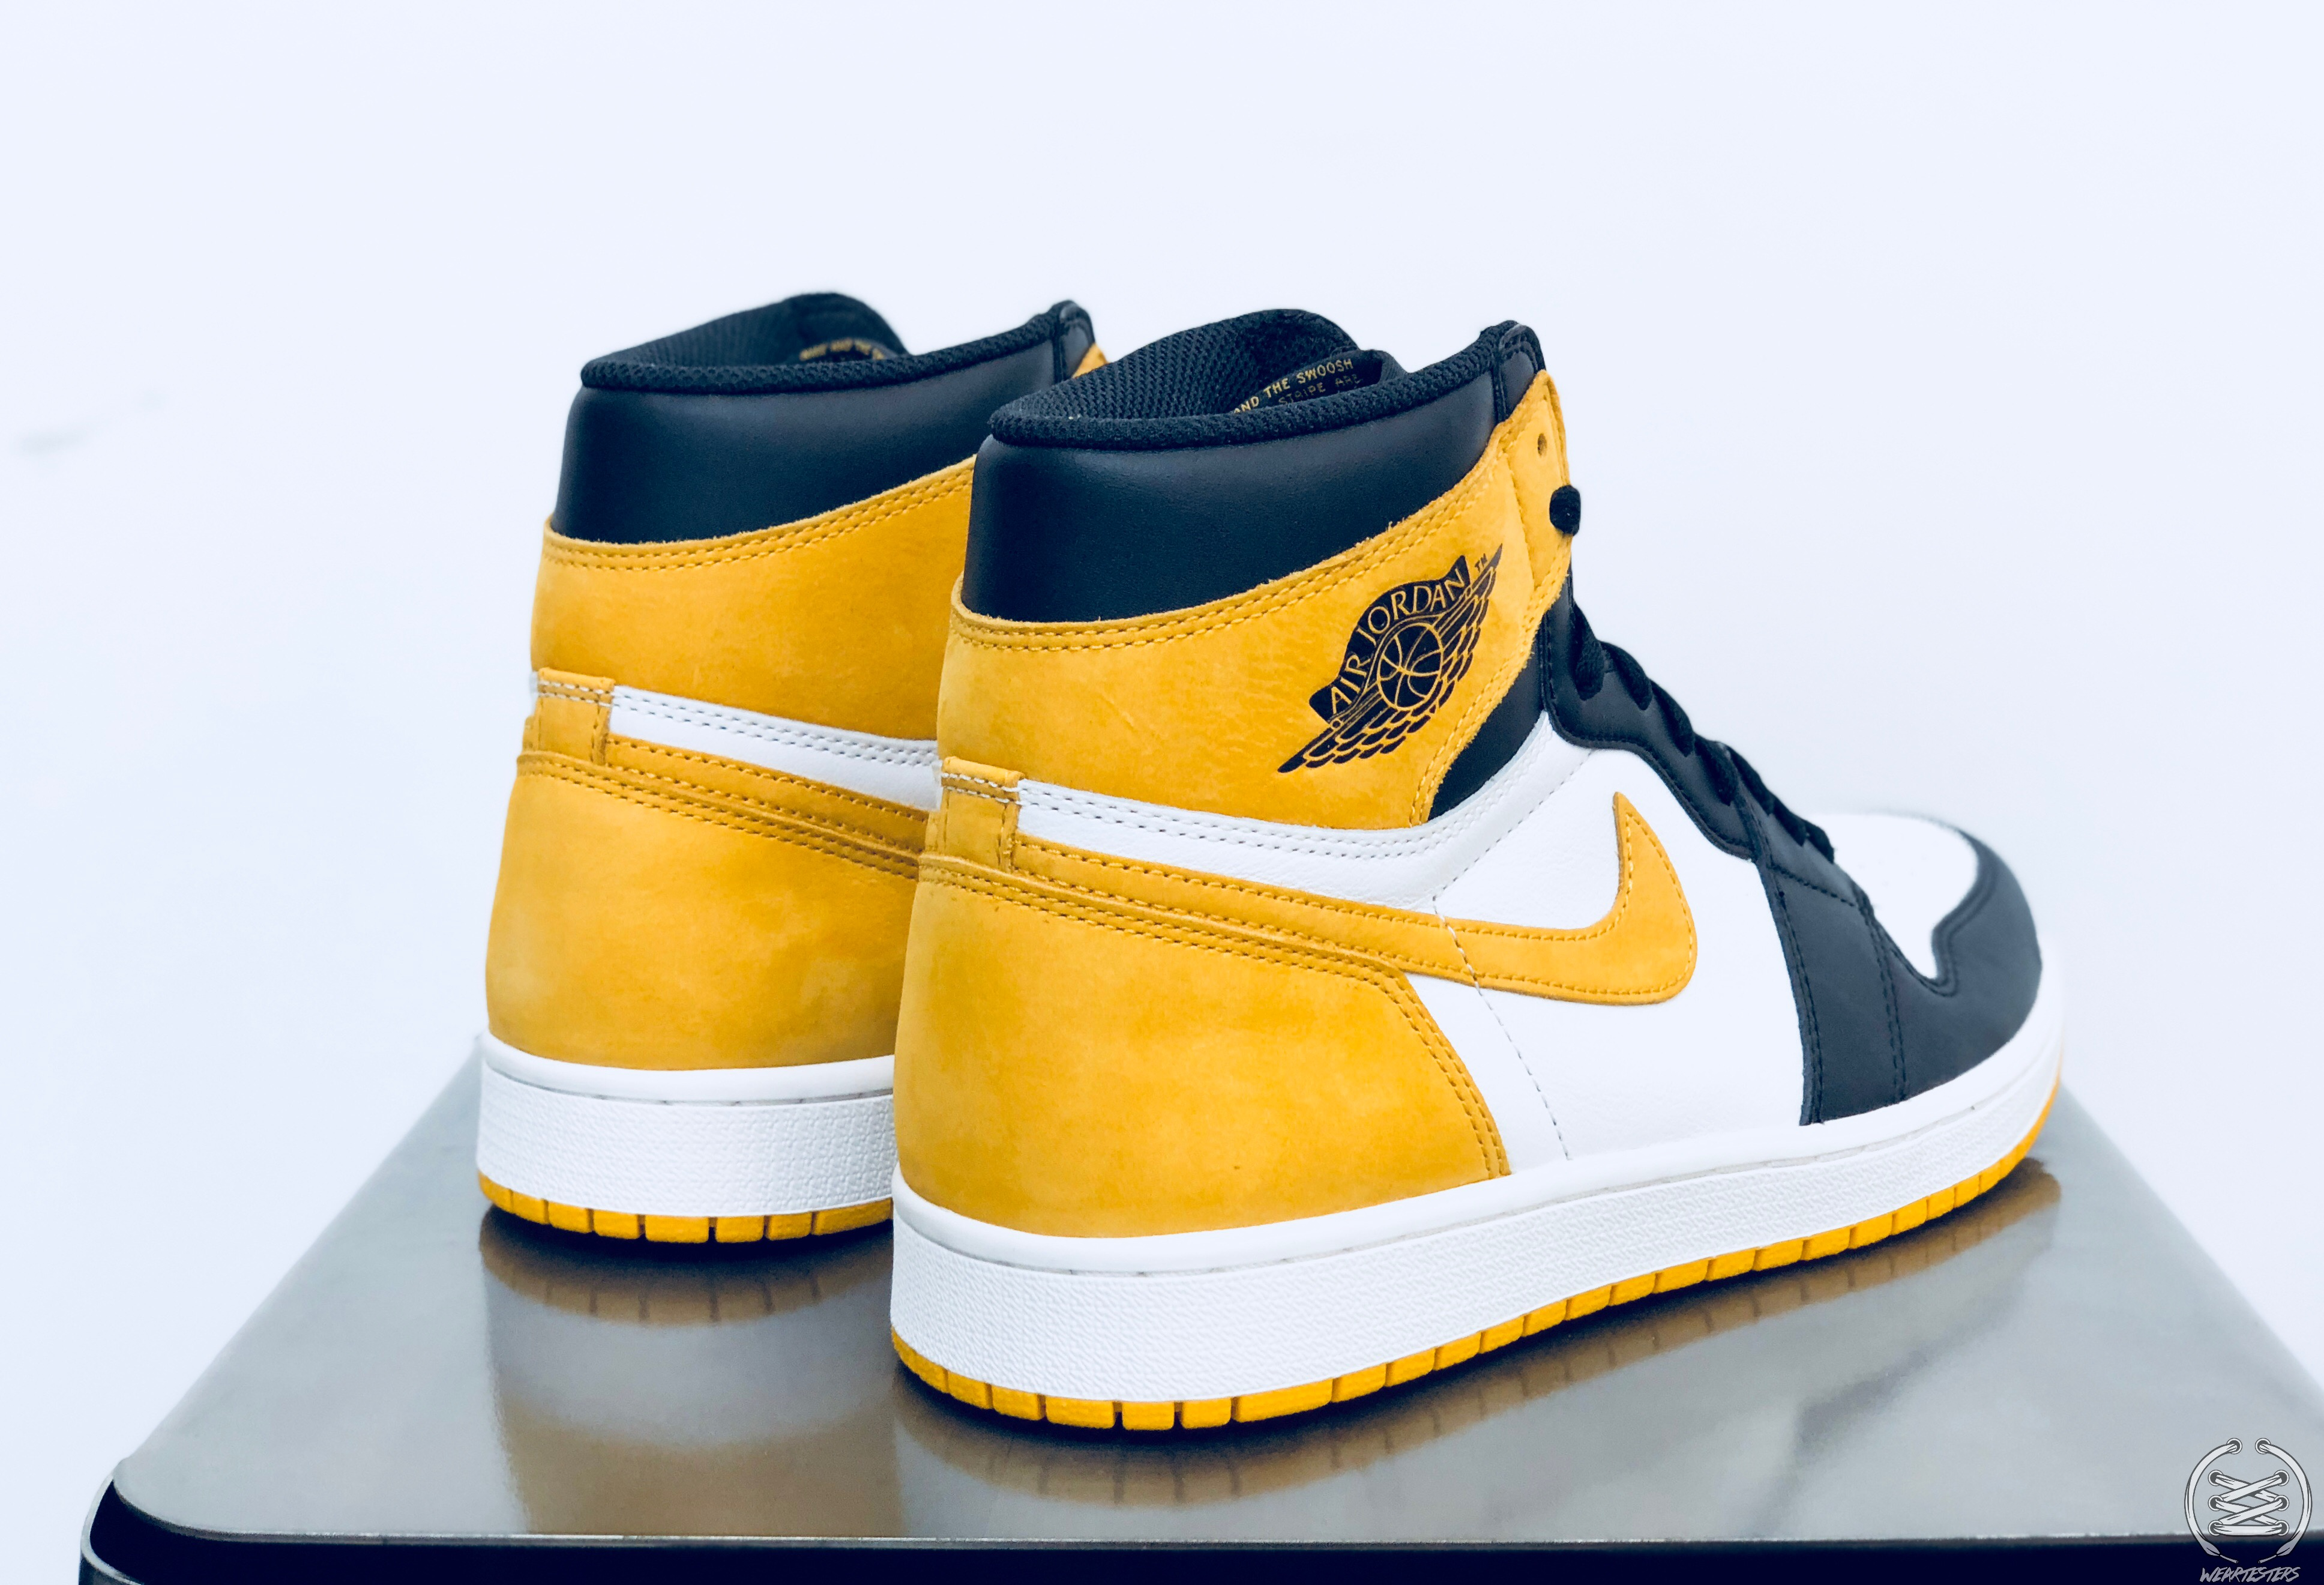 super popular 7f4b0 44627 Air Jordan 1 Yellow Ochre Best Hand in the Game collection 3